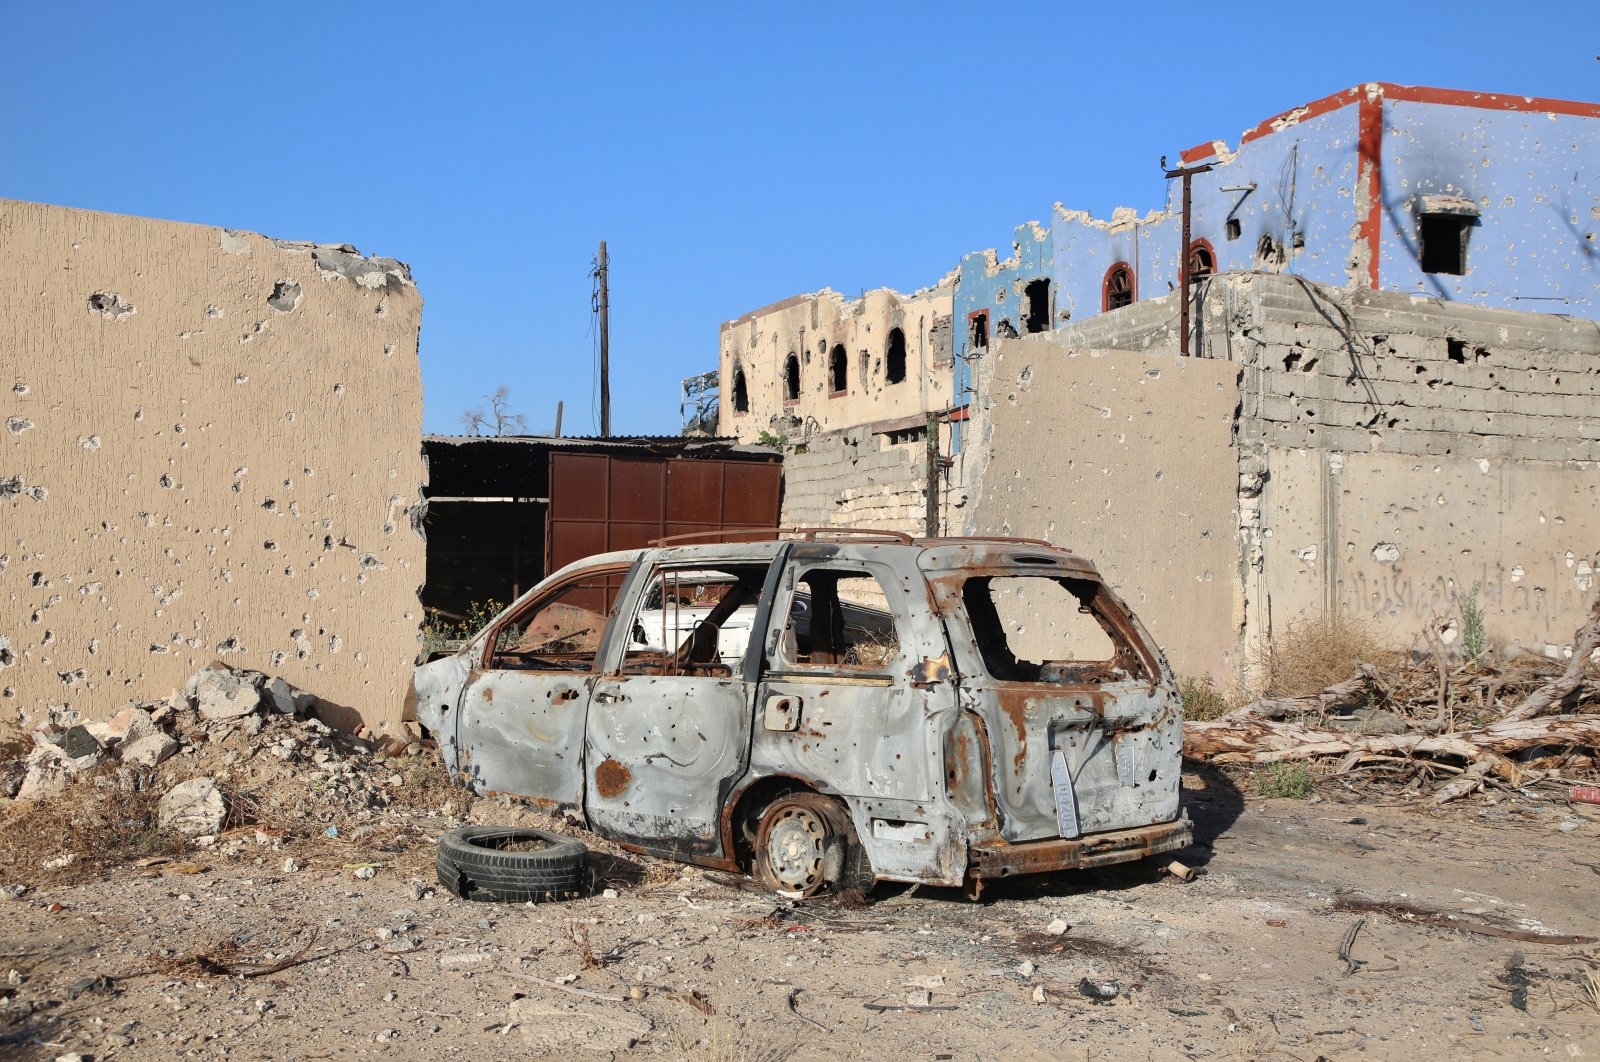 A destroyed vehicle is pictured in front of rundown buildings in residential areas in southern Tripoli liberated from Khalifa Haftar's militias, June 27, 2020. (AA Photo)